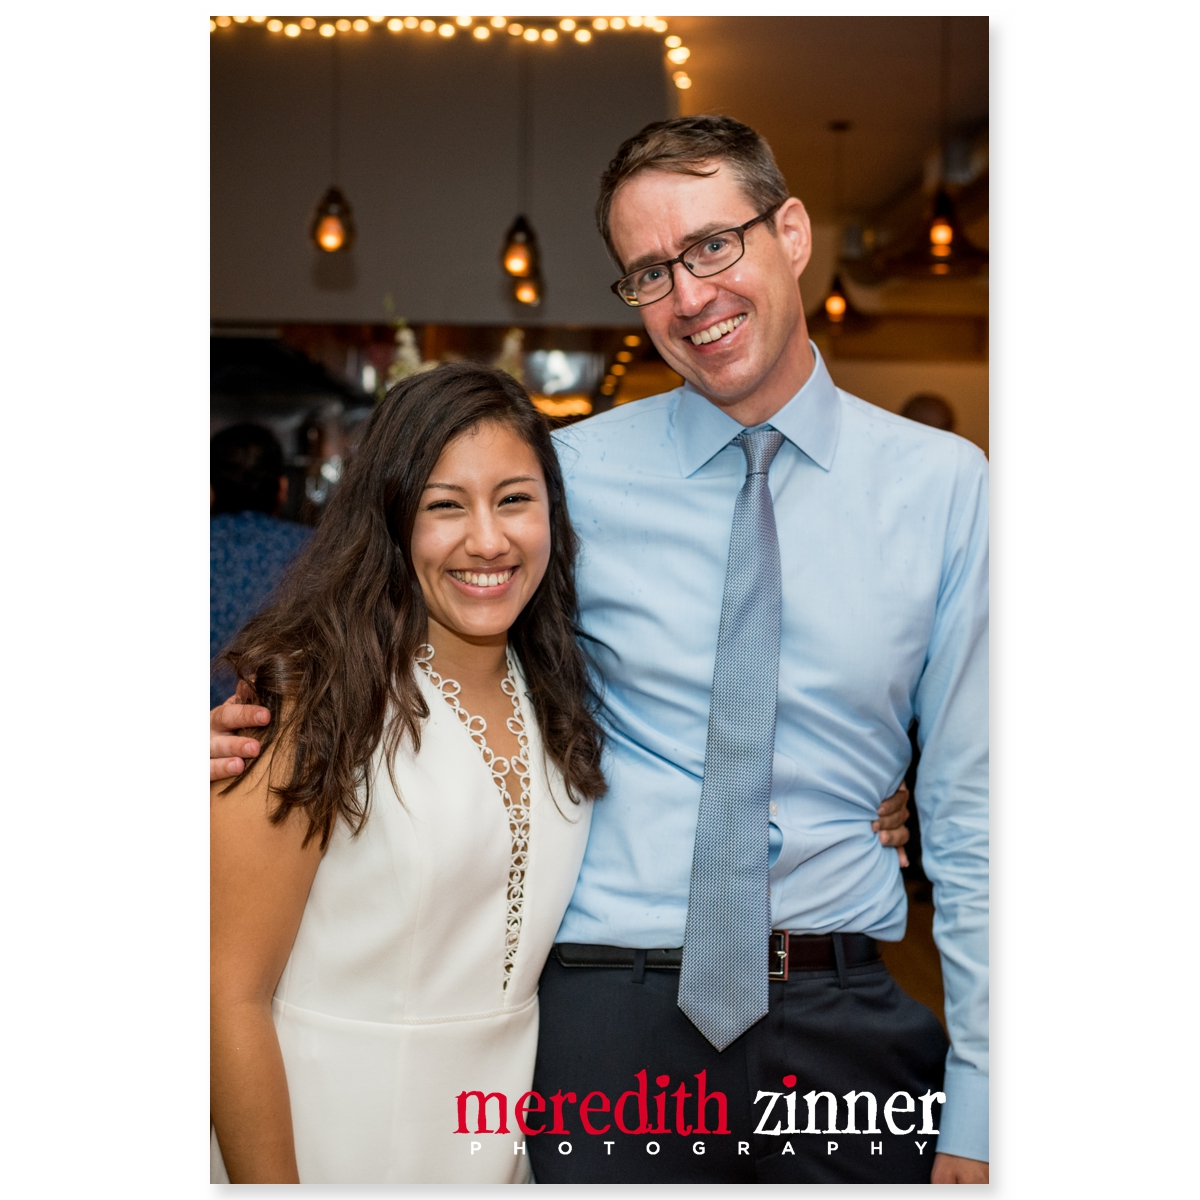 Meredith_Zinner_Photography_StilesCelebration_0460